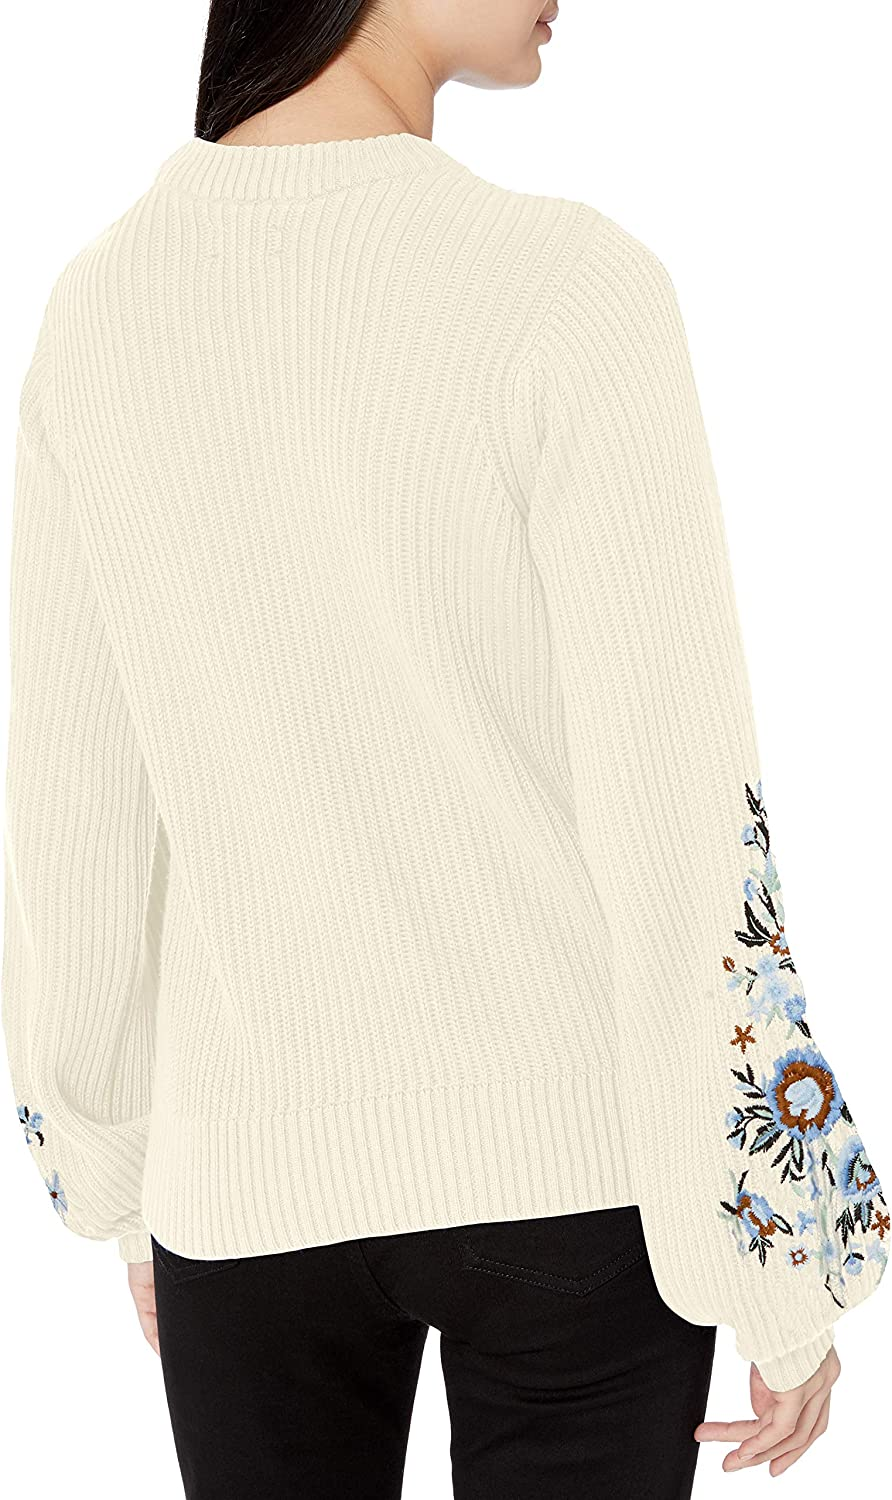 Lucky Brand Women's Embroidered Sleeve Pullover Sweater Snow White